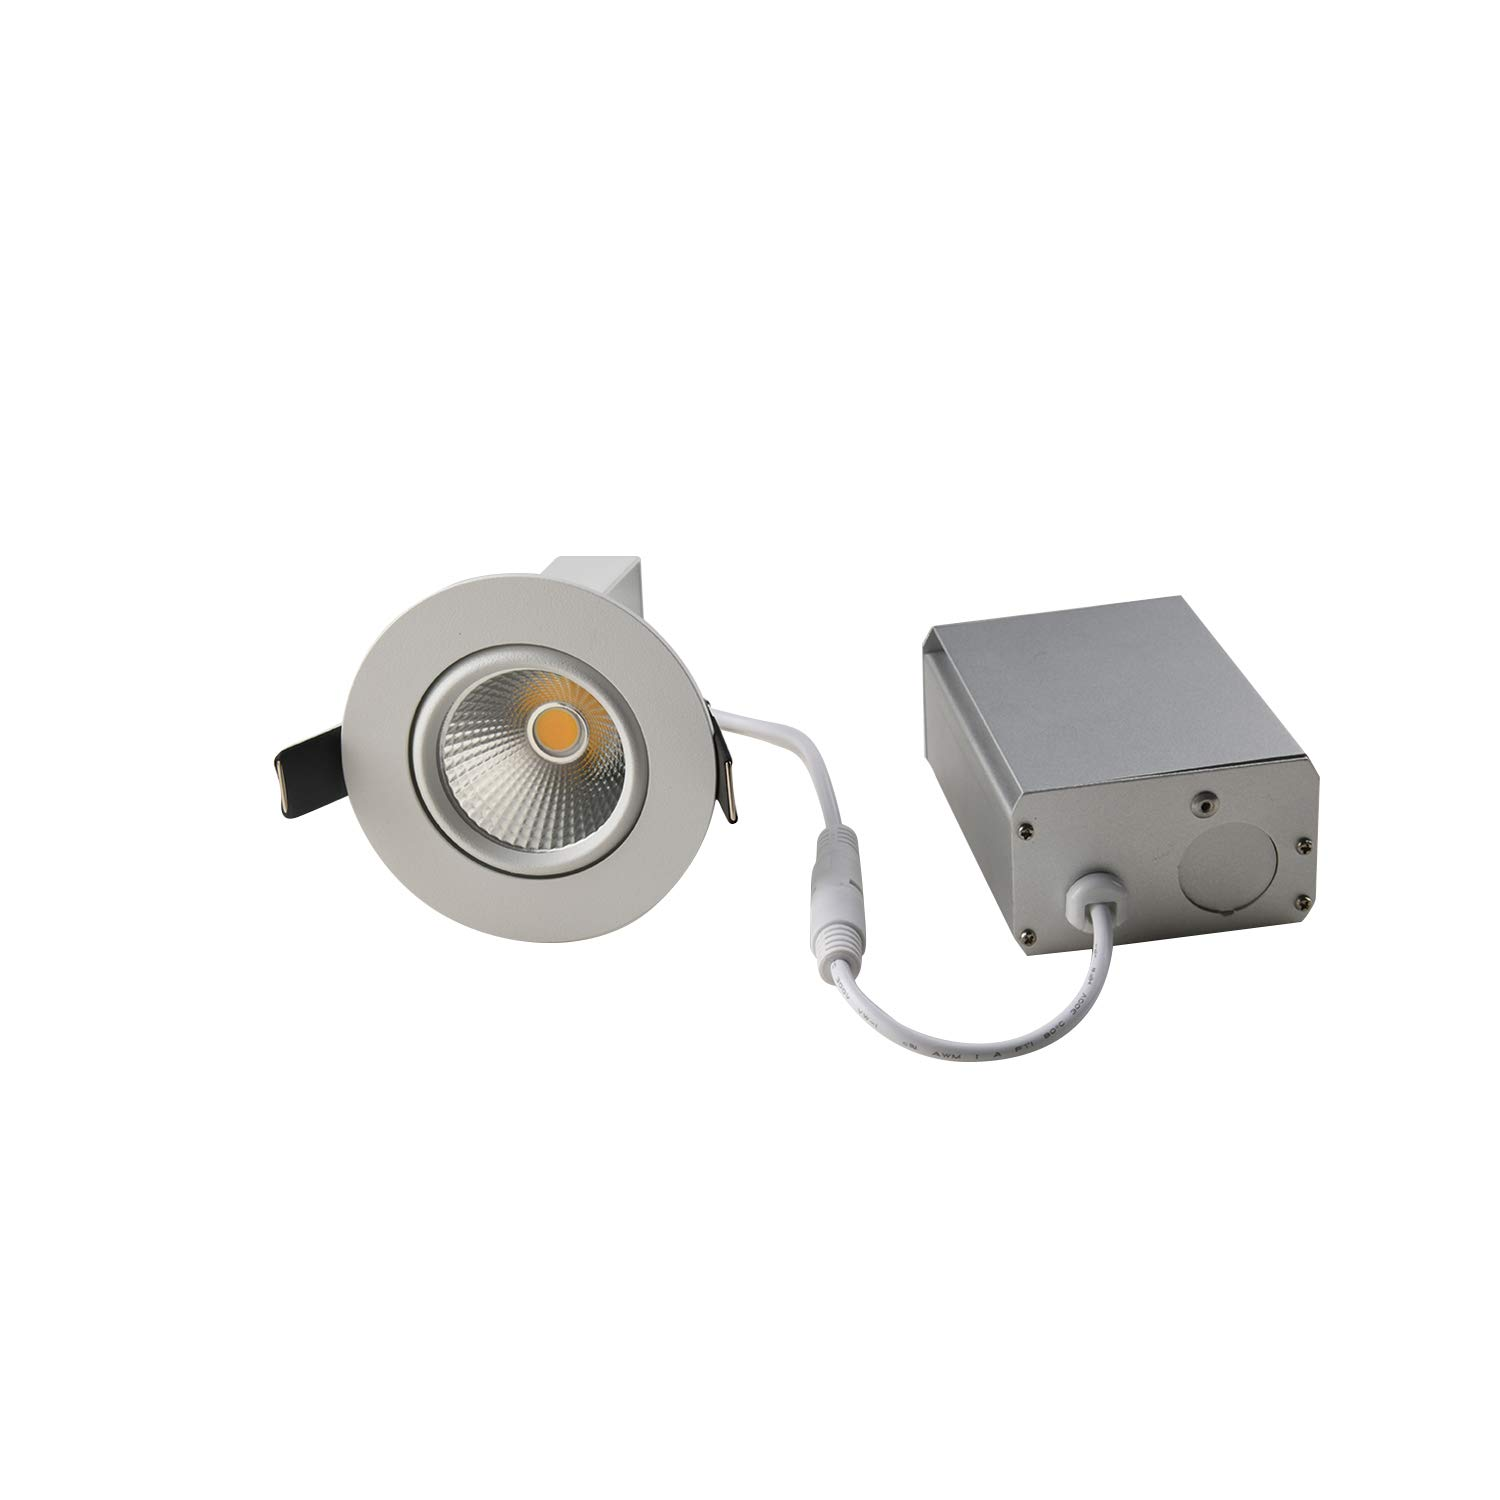 OBSESS Dimmable Recessed Ceiling Light with Junction Box, Air Tight IC Rated 8W COB LED Downlight Spotlight, White 4000K Aluminum